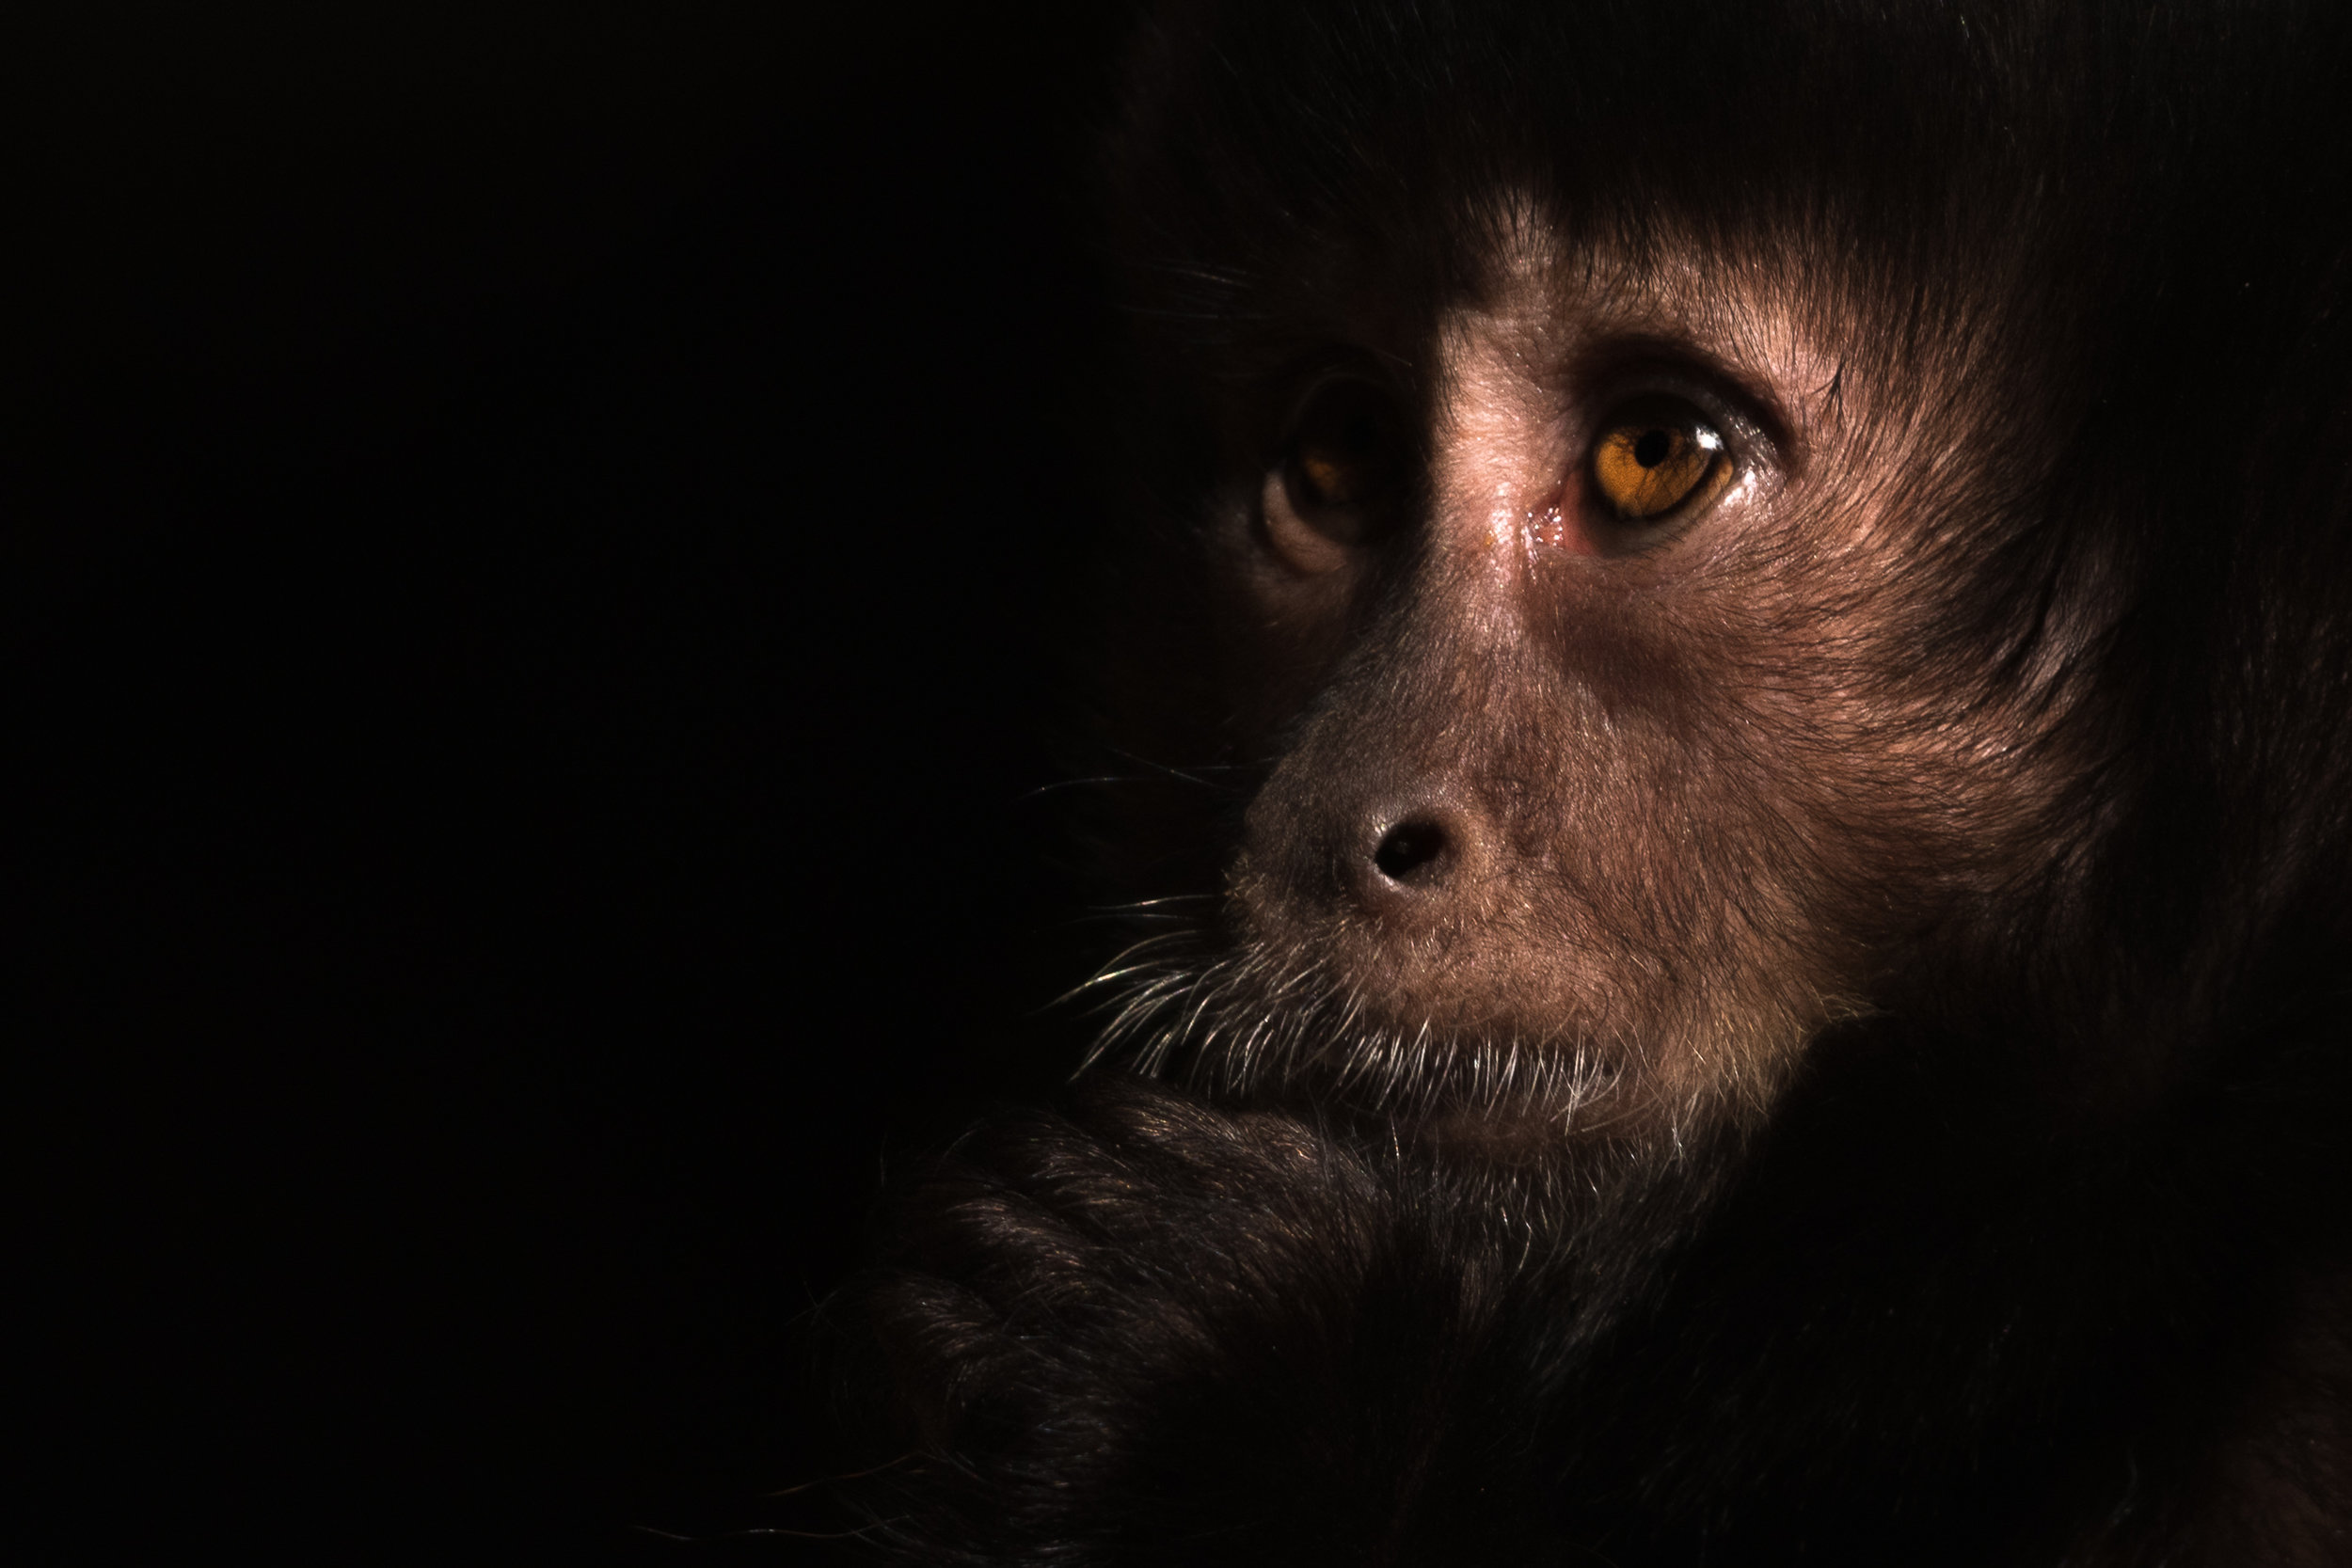 capuchin_shadow_light (1 of 1).jpg